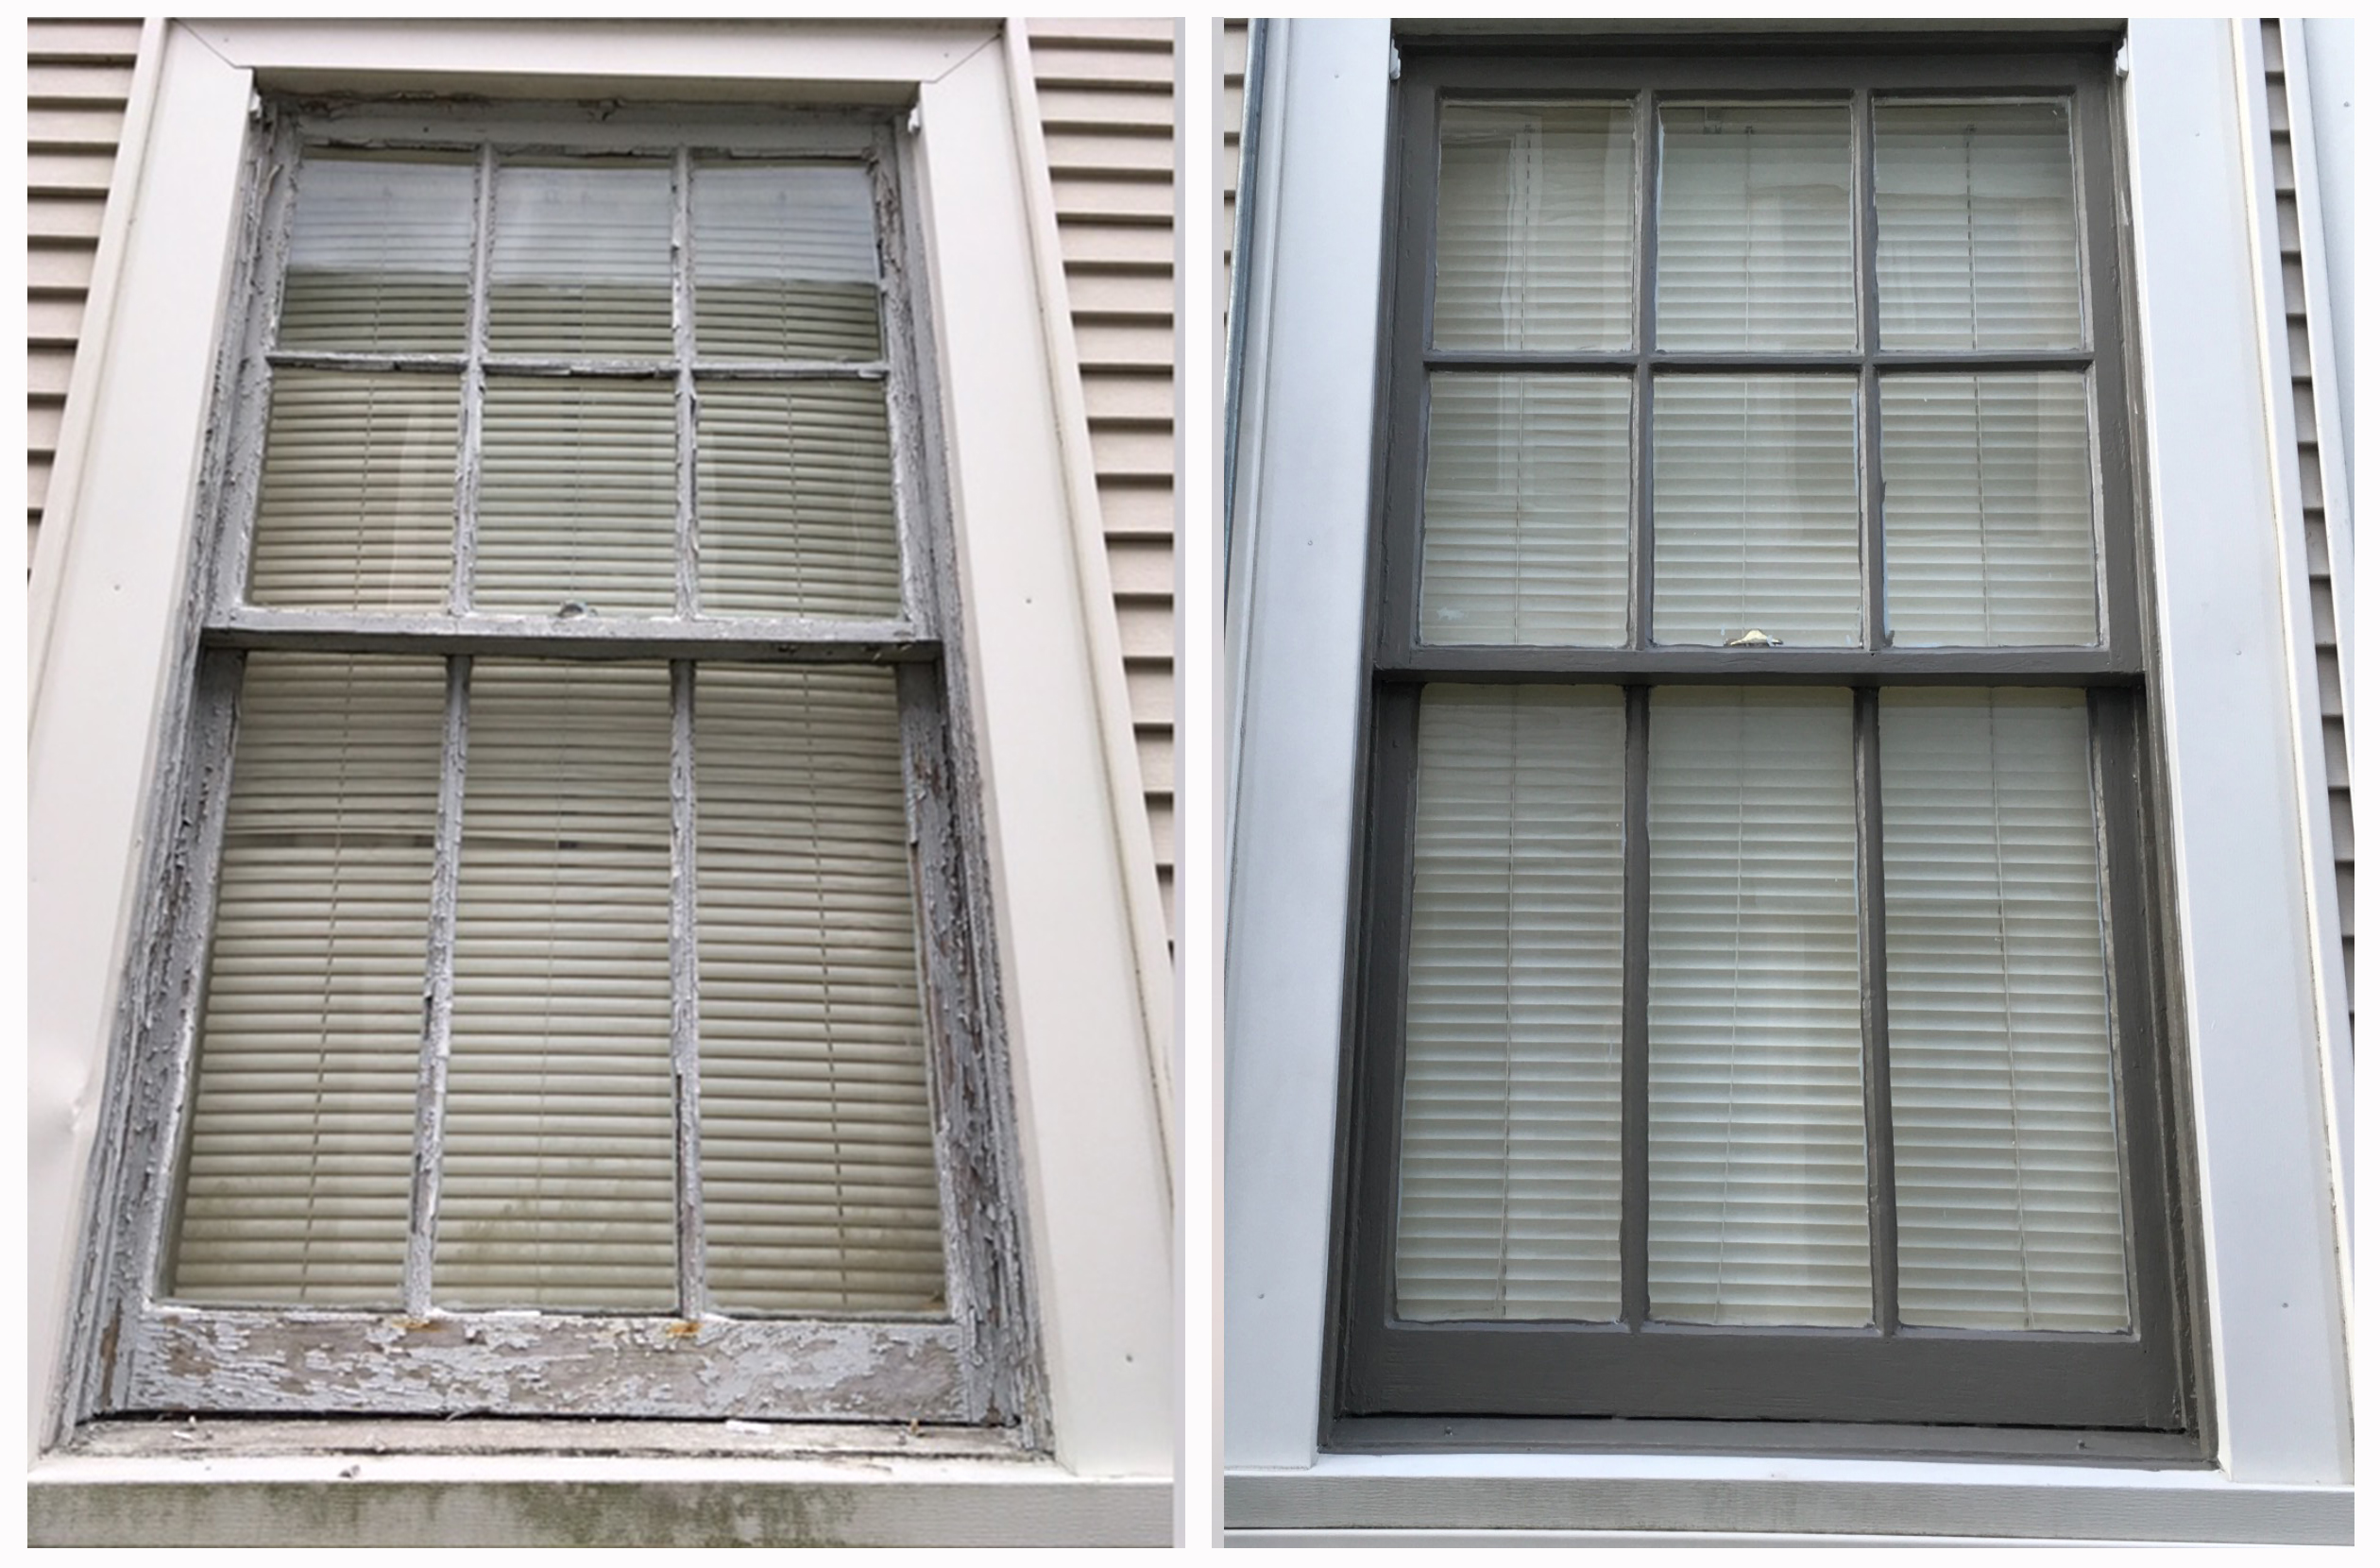 windows new orleans balcony window replacement in new orleans done right services at mr fix it handyman